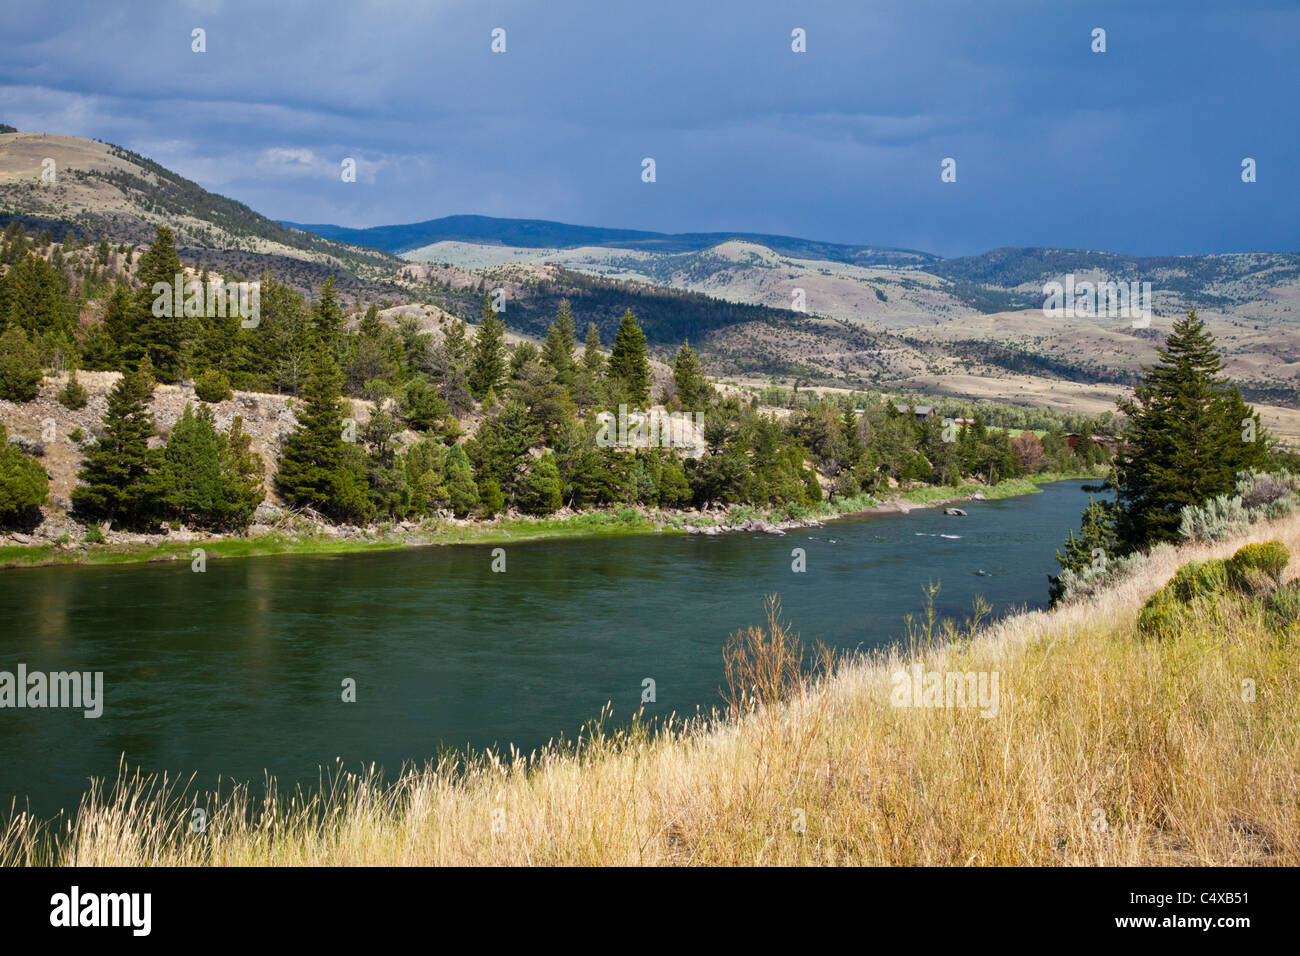 Light before storm on Yellowstone River along scenic highway US 89 - Stock Image